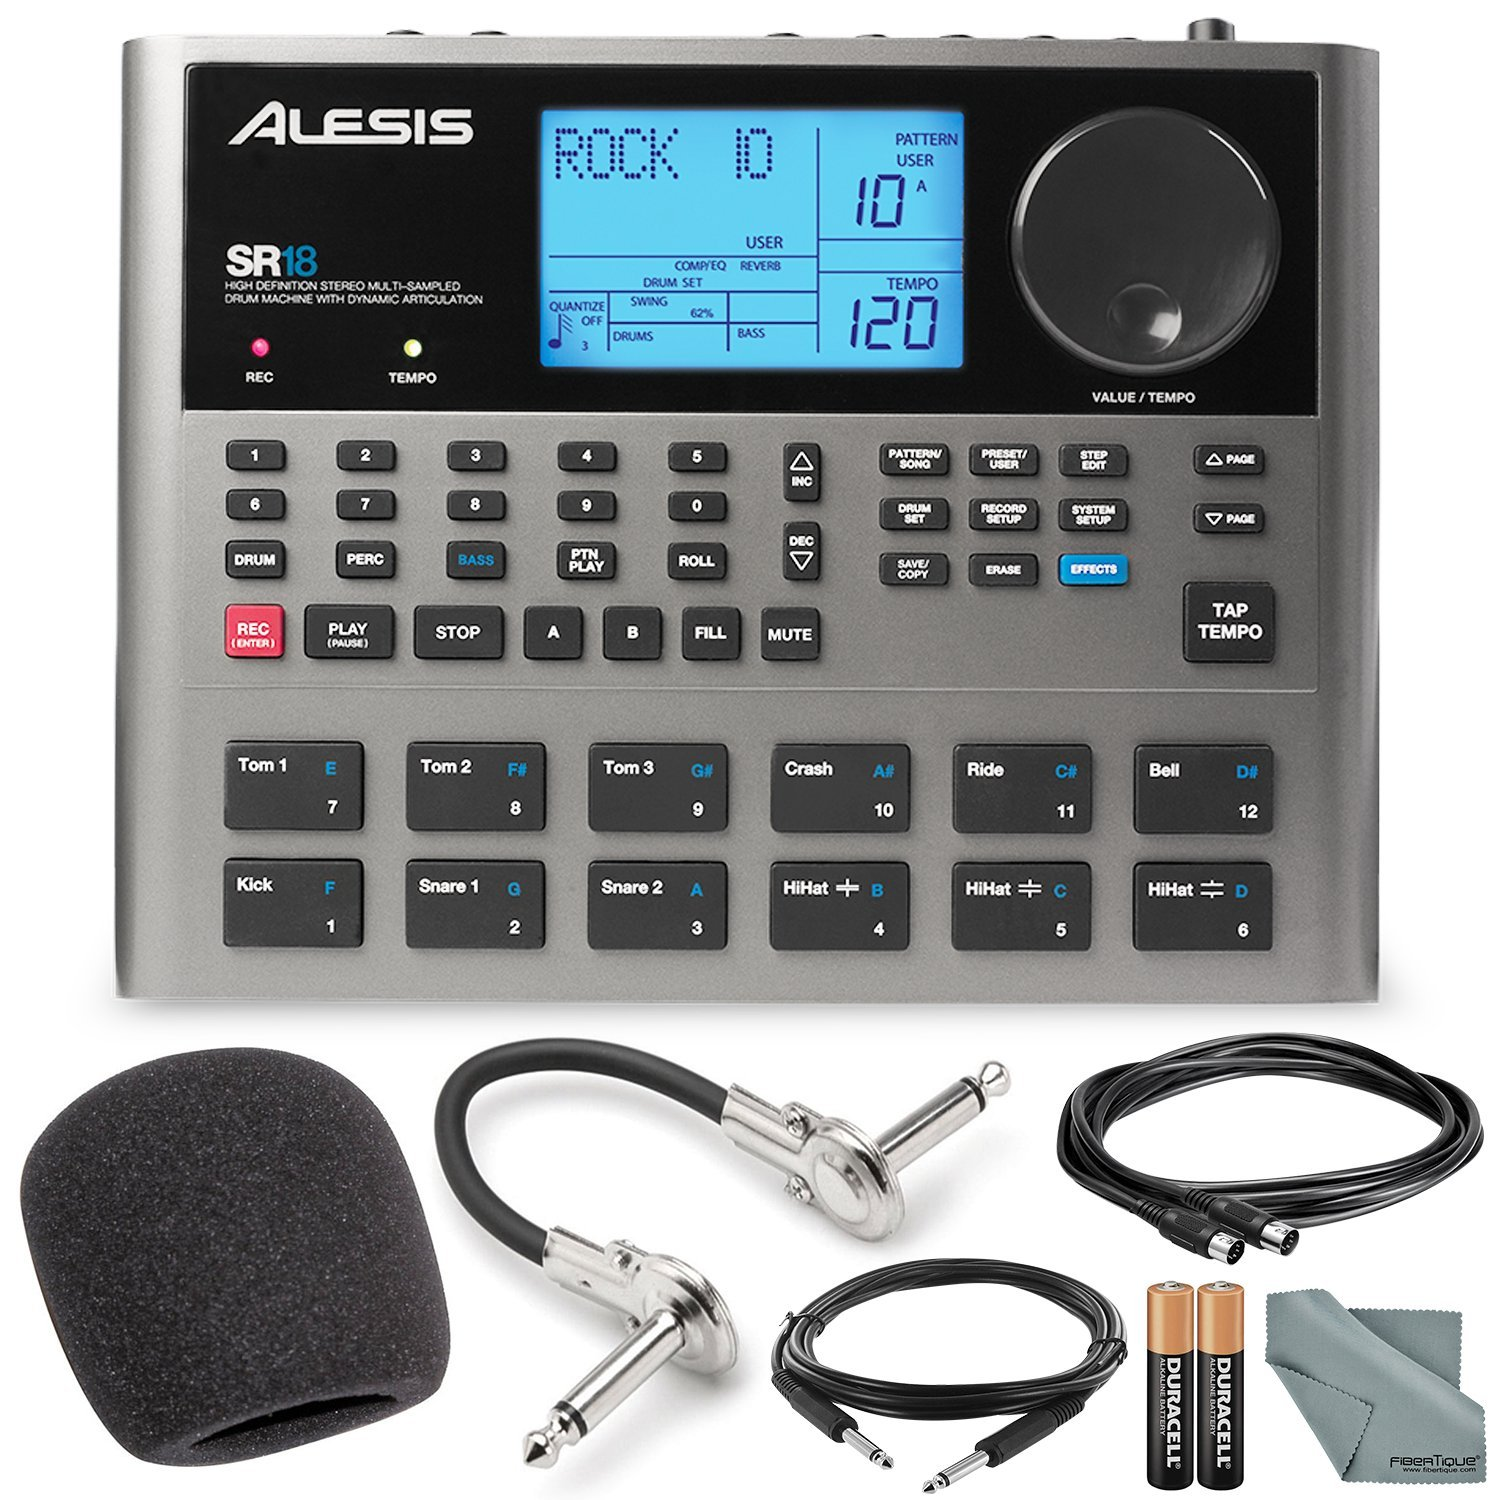 Alesis SR18 18 Bit Portable Drum Machine with Effects and Accessory Bundle w/Cables + Fibertique Cloth + Mic Windscreen  by Photo Savings